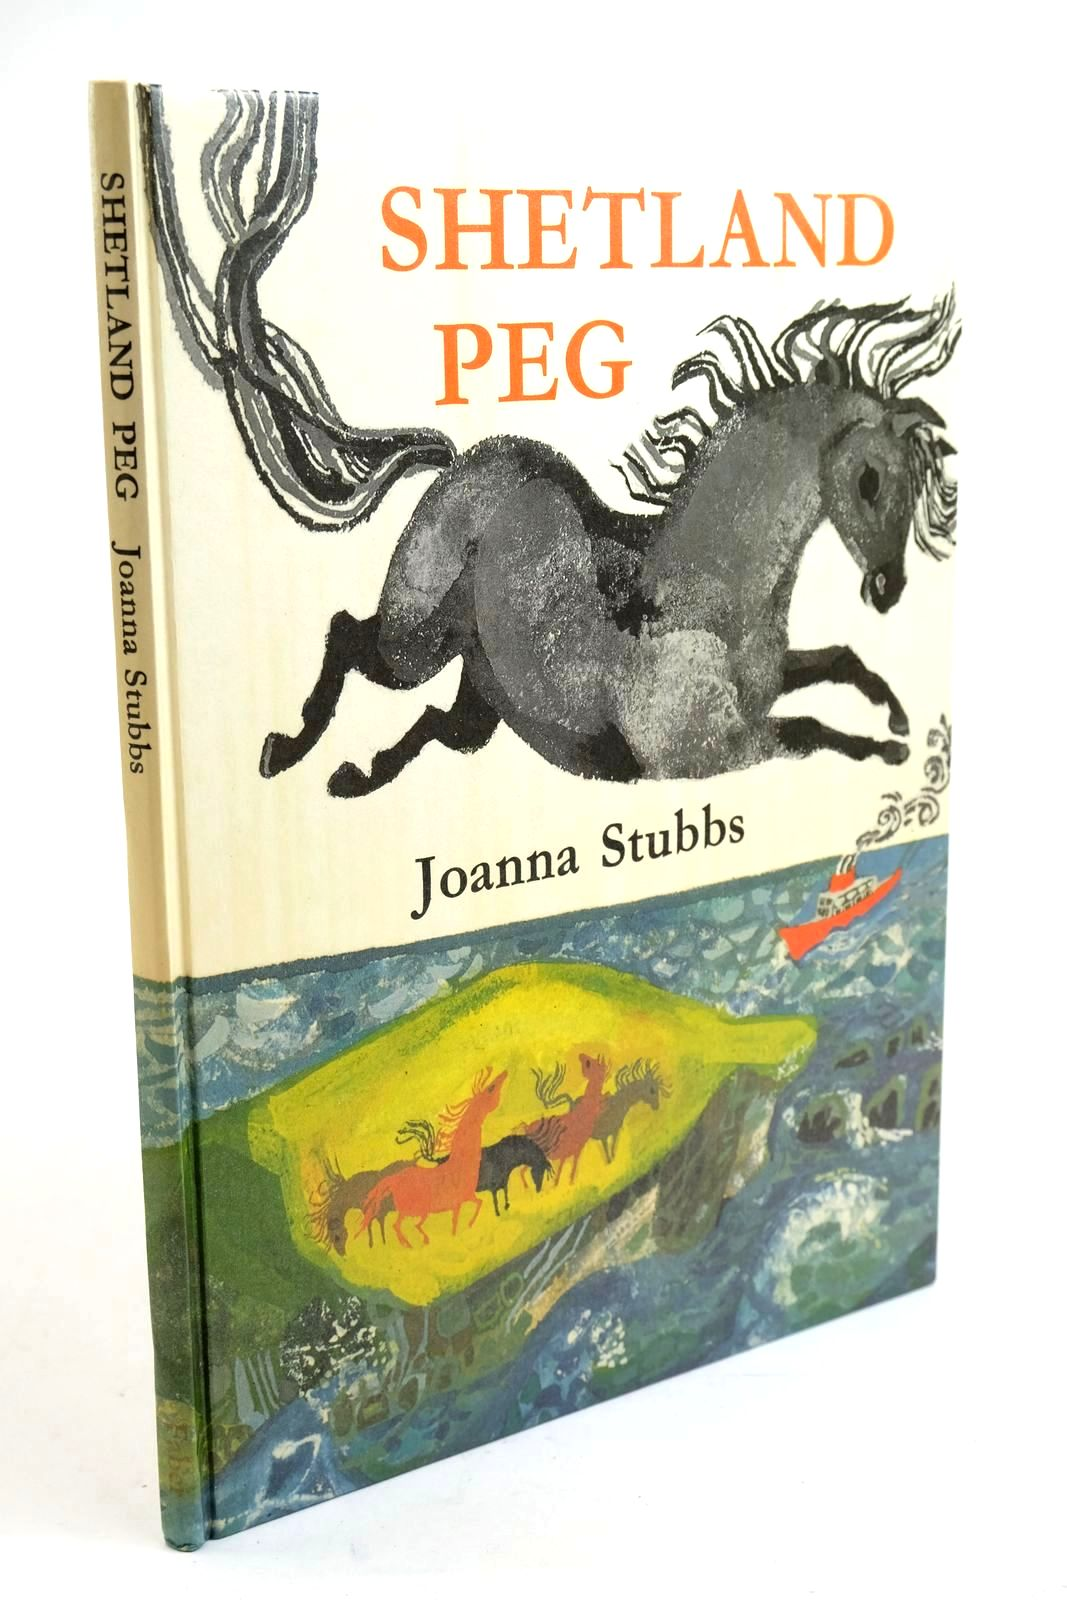 Photo of SHETLAND PEG written by Stubbs, Joanna illustrated by Stubbs, Joanna published by Faber & Faber Limited (STOCK CODE: 1321613)  for sale by Stella & Rose's Books